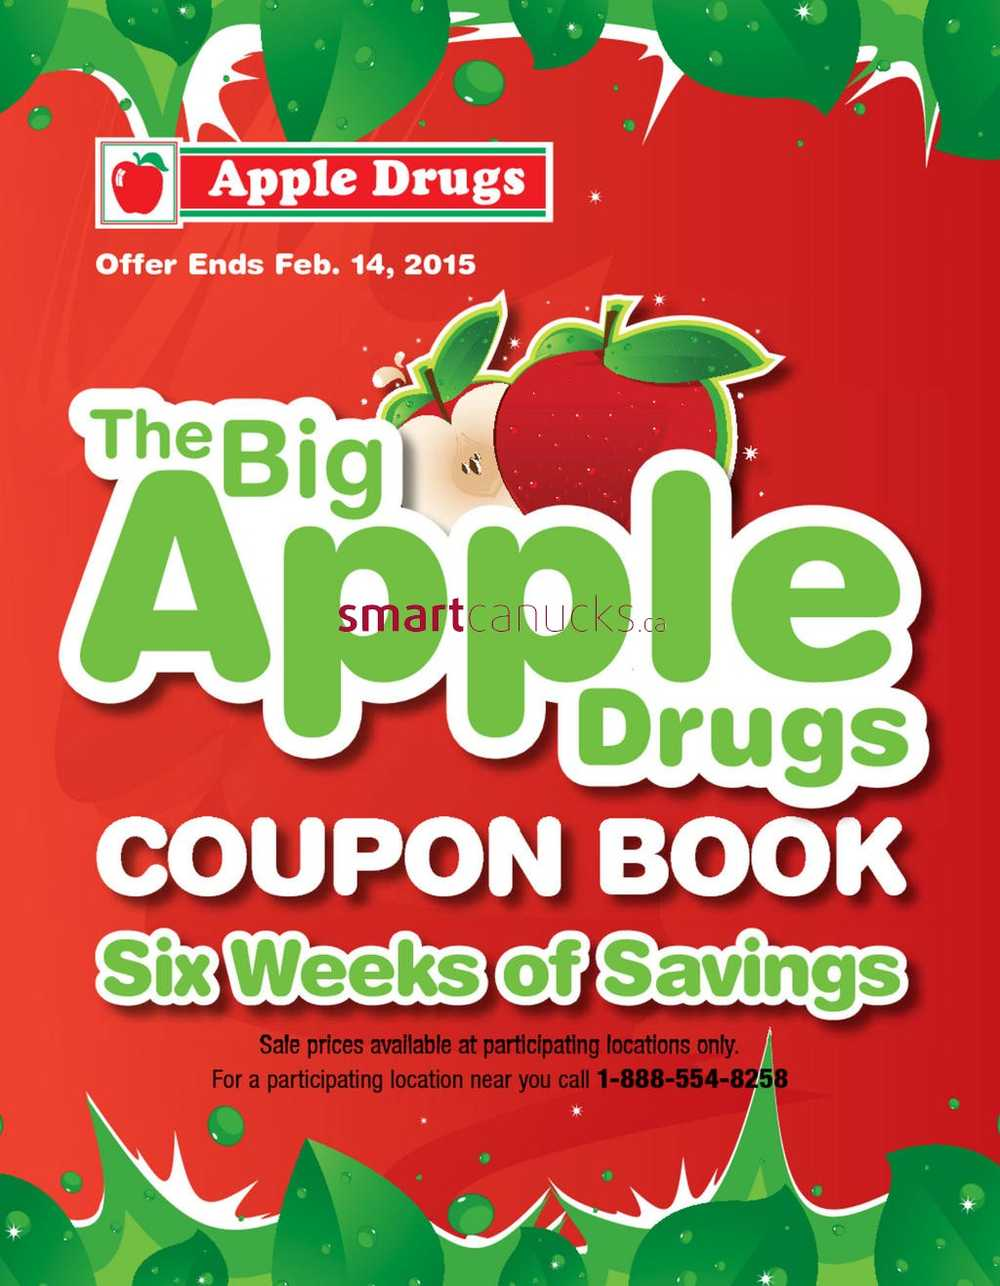 Apple computer discount coupons